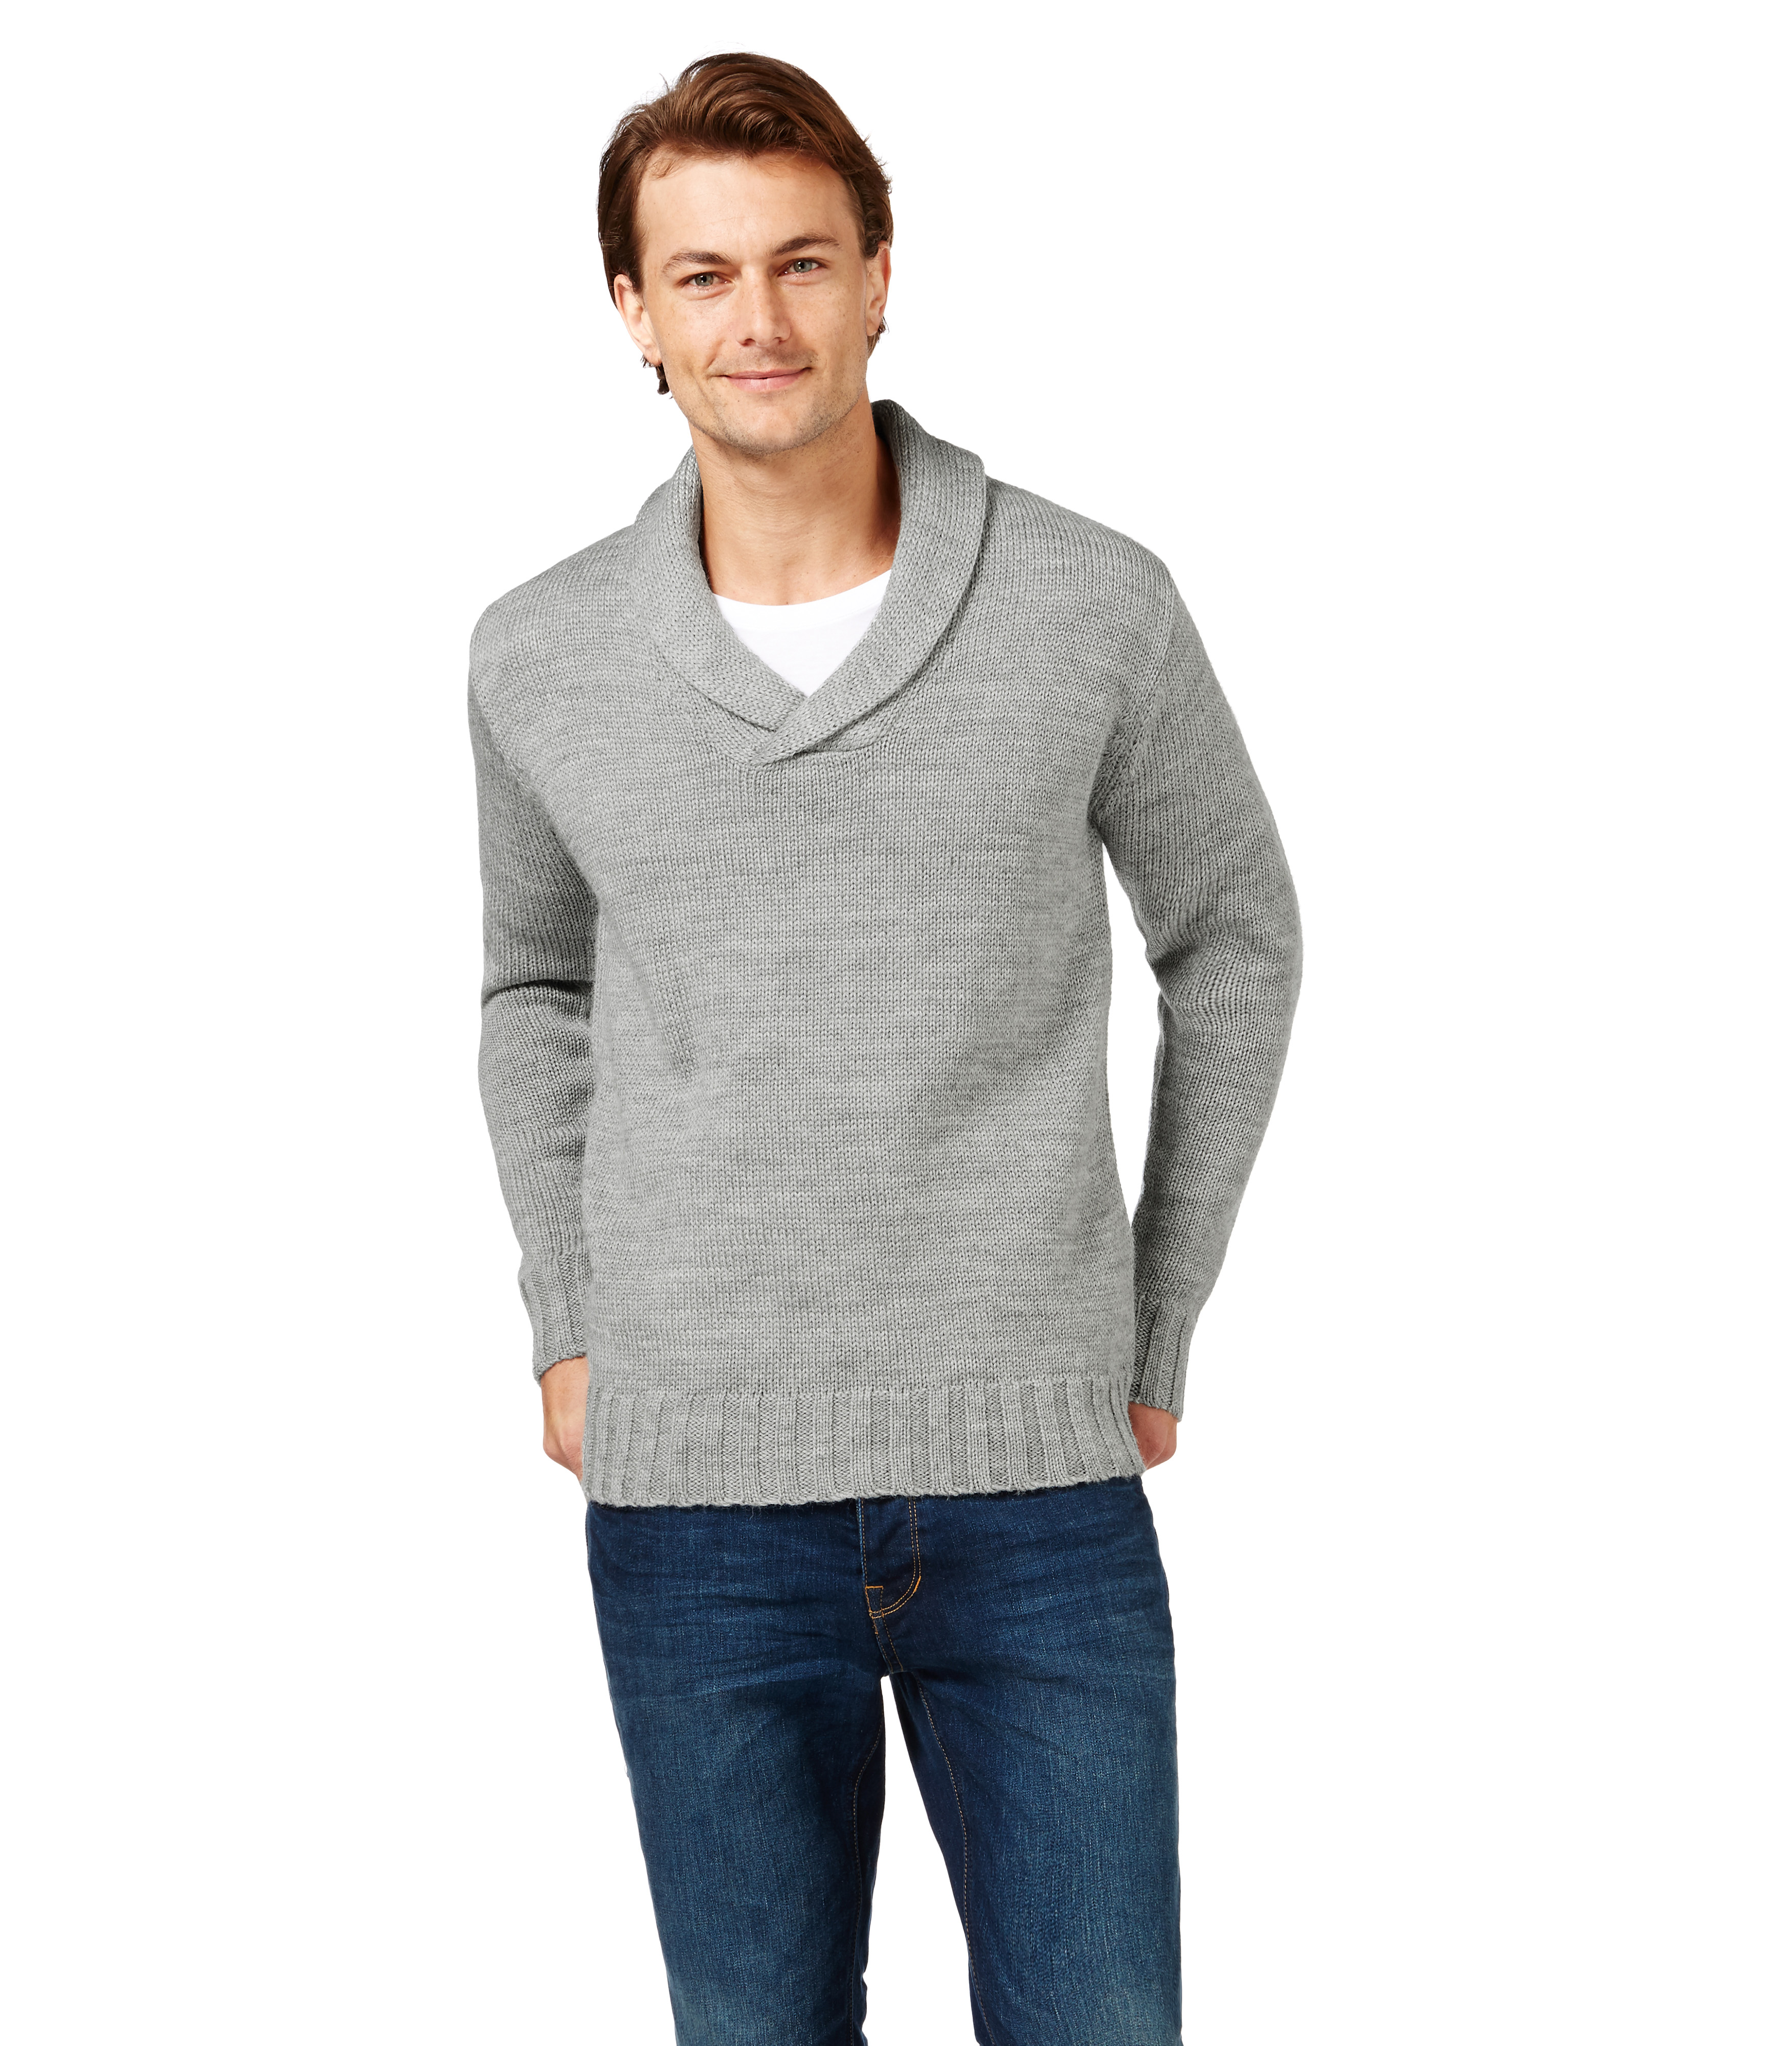 New Mens Chaps Shawl Collar Sweater Heavyweight White Heather $80 NWT Size Small See more like this. JoS. A. Bank Mens Size XL Shawl Collar Cardigan Sweater % Lambs Wool. Pre-Owned.